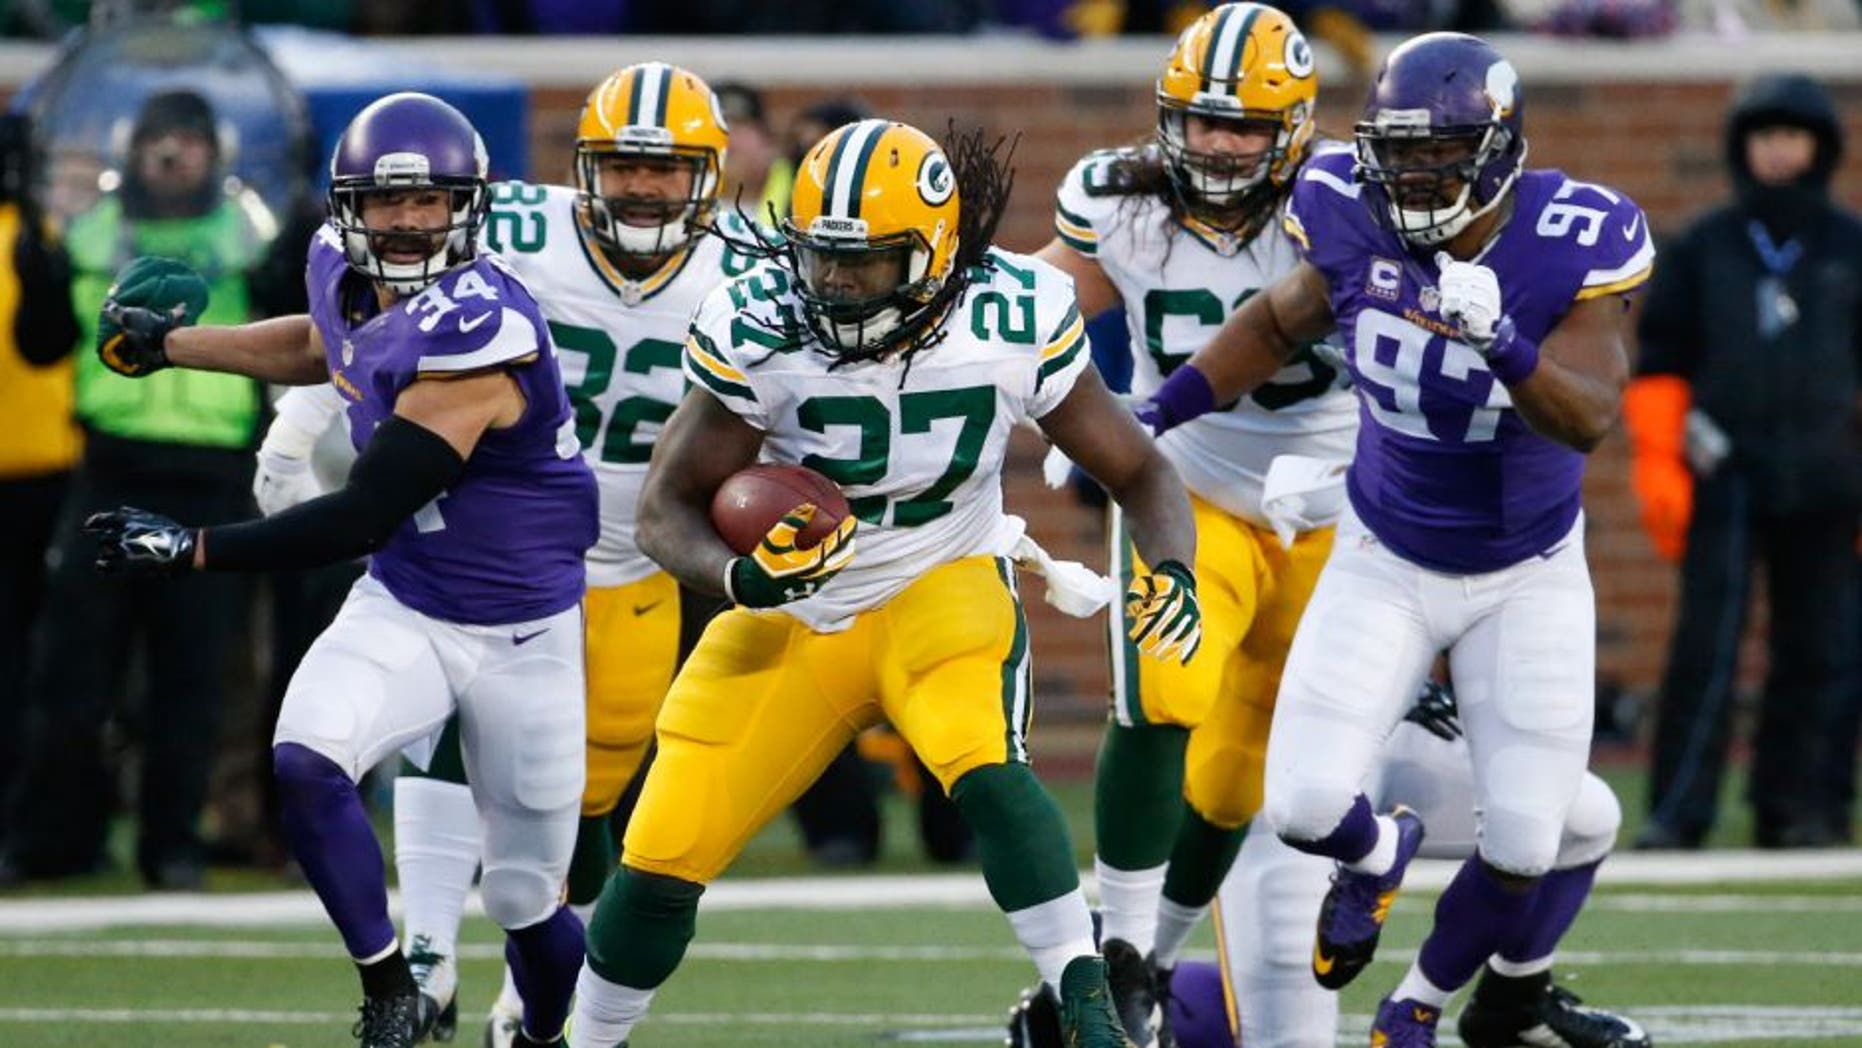 Green Bay Packers running back Eddie Lacy (27) runs past Minnesota Vikings strong safety Andrew Sendejo (34) an defensive end Everson Griffen (97) during the first half of an NFL football game in Minneapolis, Sunday, Nov. 22, 2015.